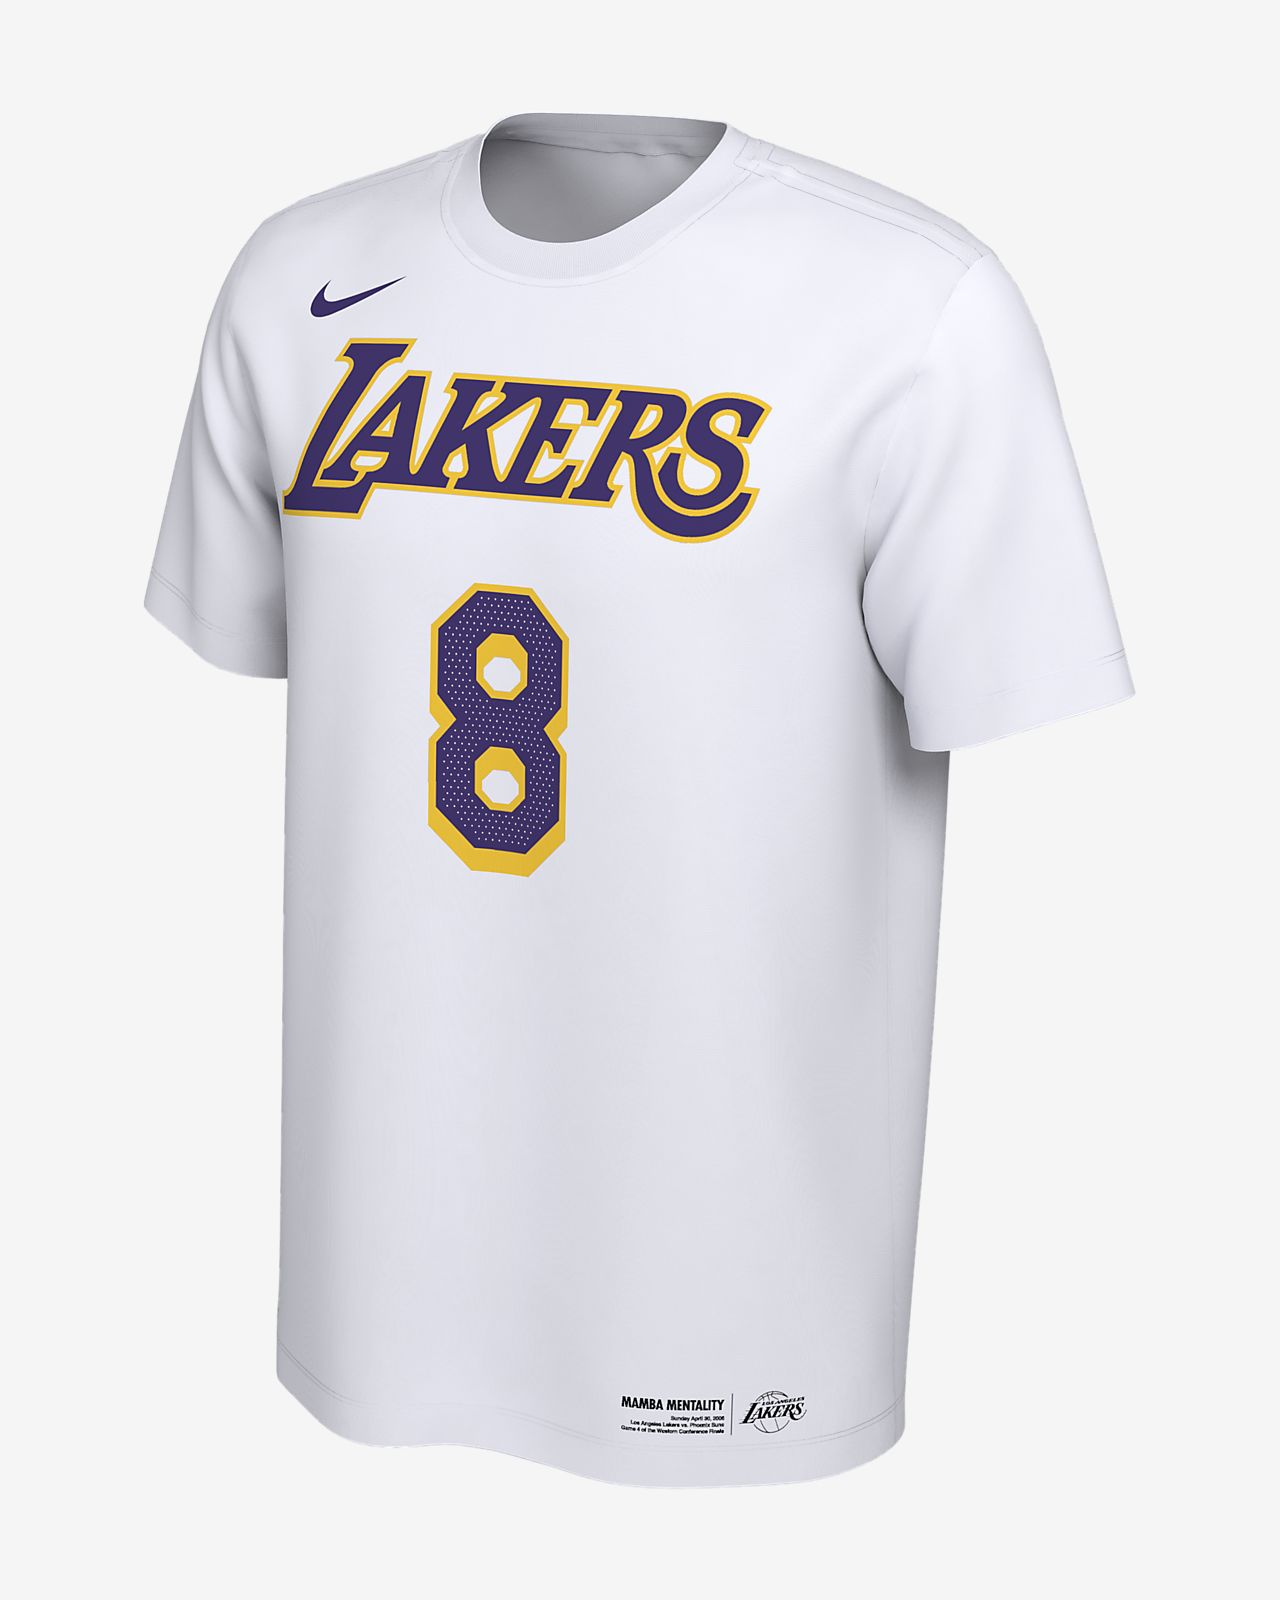 07e278fe4b8d Kobe Bryant Los Angeles Lakers Nike Dri-FIT Men s NBA T-Shirt. Nike.com